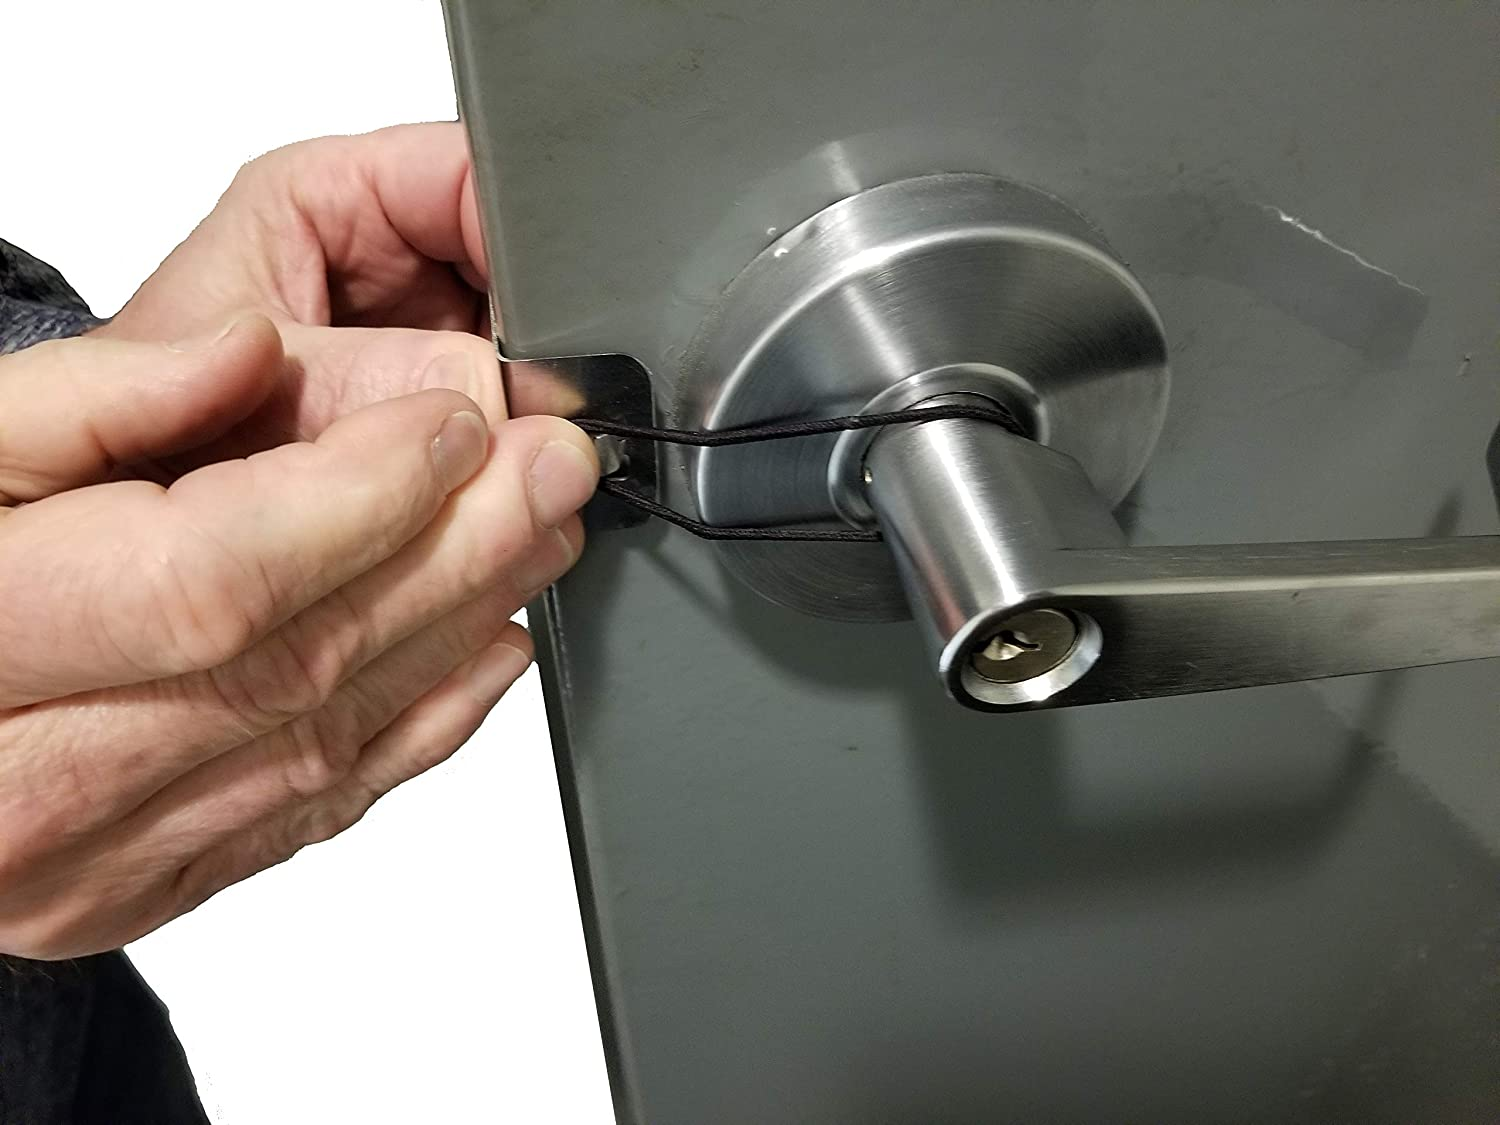 Set of 2 Stainless Steel Door Latch Blockers - Commerical Doors 1 3/4 inch Thick for Hands-Free Opening - Made in The USA